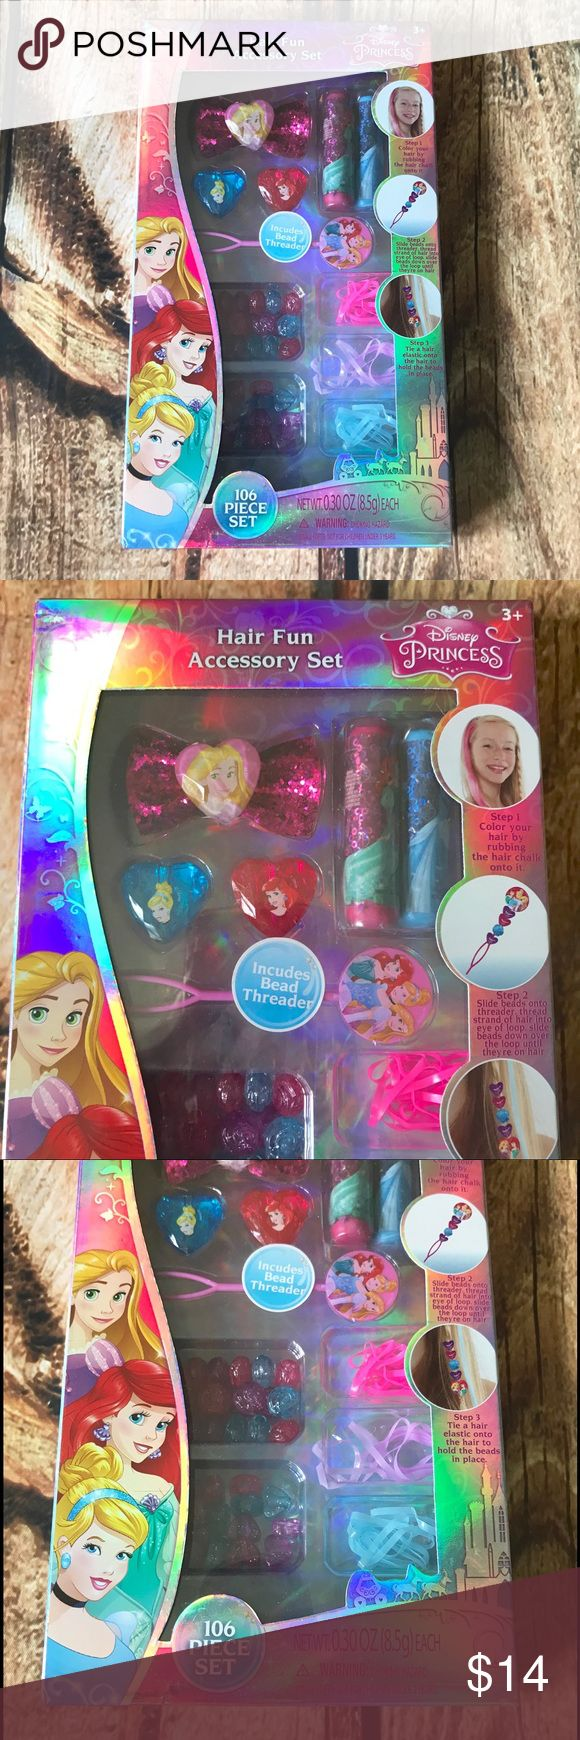 Disney Princess 106 Piece Hair Fun Accessory Set 🎁Disney Princess Hair Fun Accessory Set 🎁🎁 🎄🎄Christmas in July🎄🎄NWOT and includes 2 hair chalks (1 blue & 1 pink) 1 bow shaped hair tie, 50 hair elastics, 50 beads, 1 bead threader and 2 button gems. Smoke free home. Disney Accessories Hair Accessories